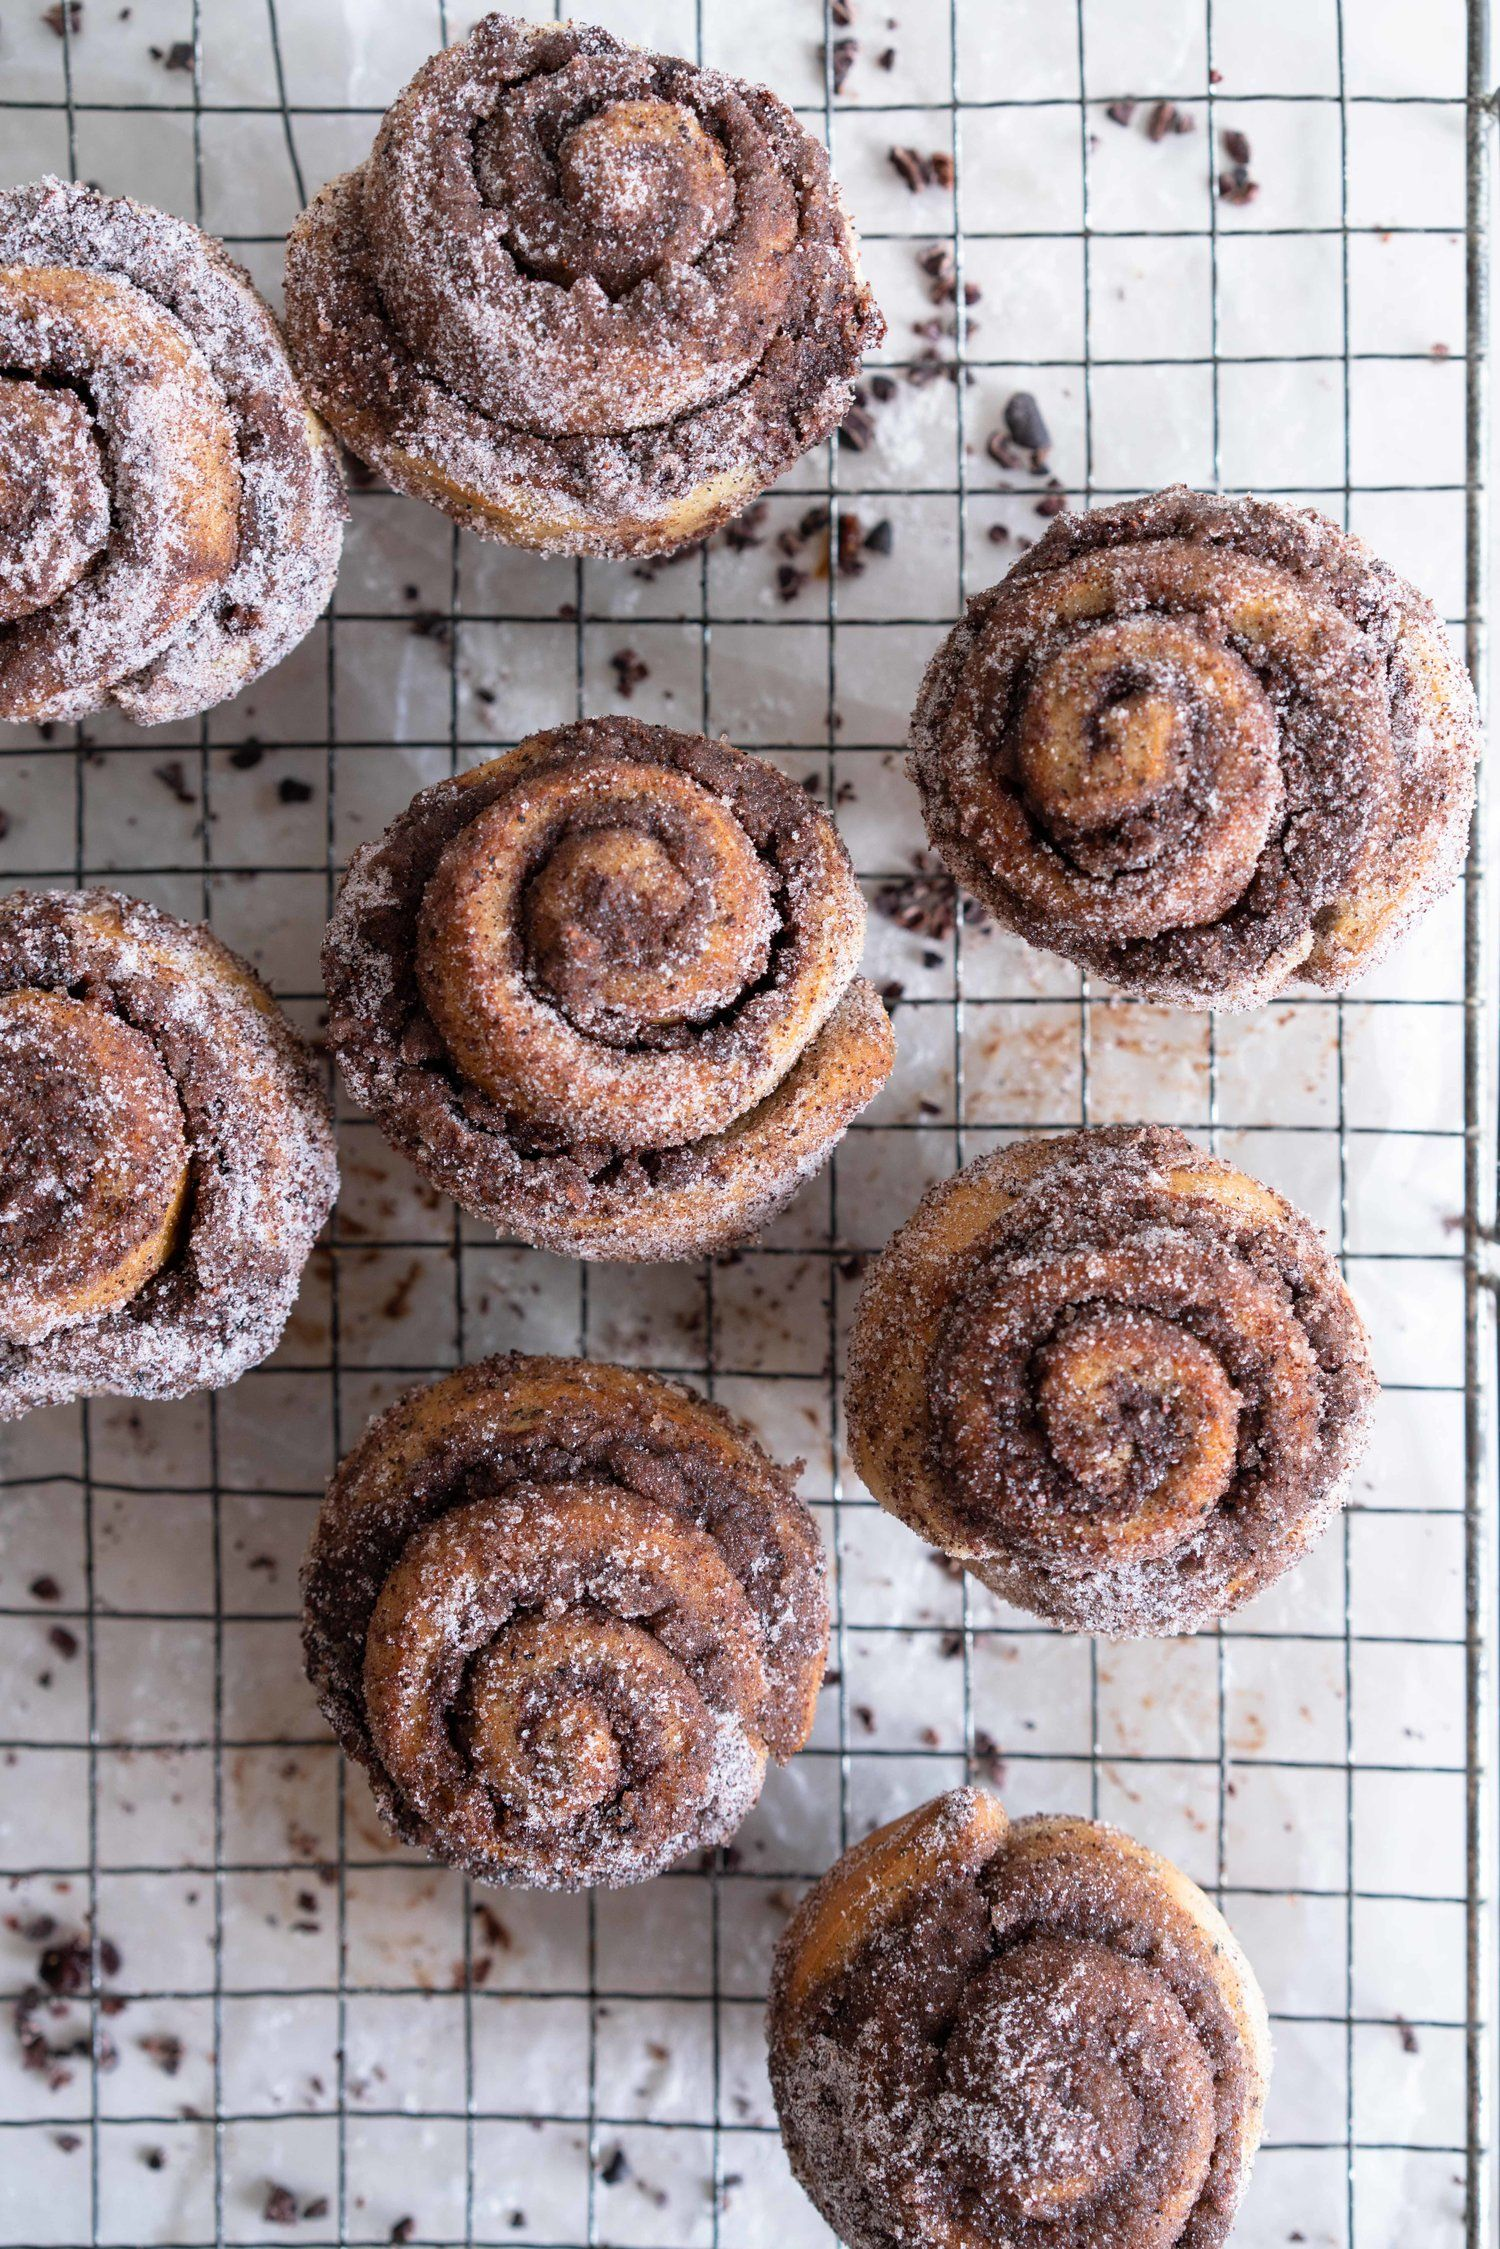 Earl Grey Buns With Dark Chocolate And Cocoa Nib Filling